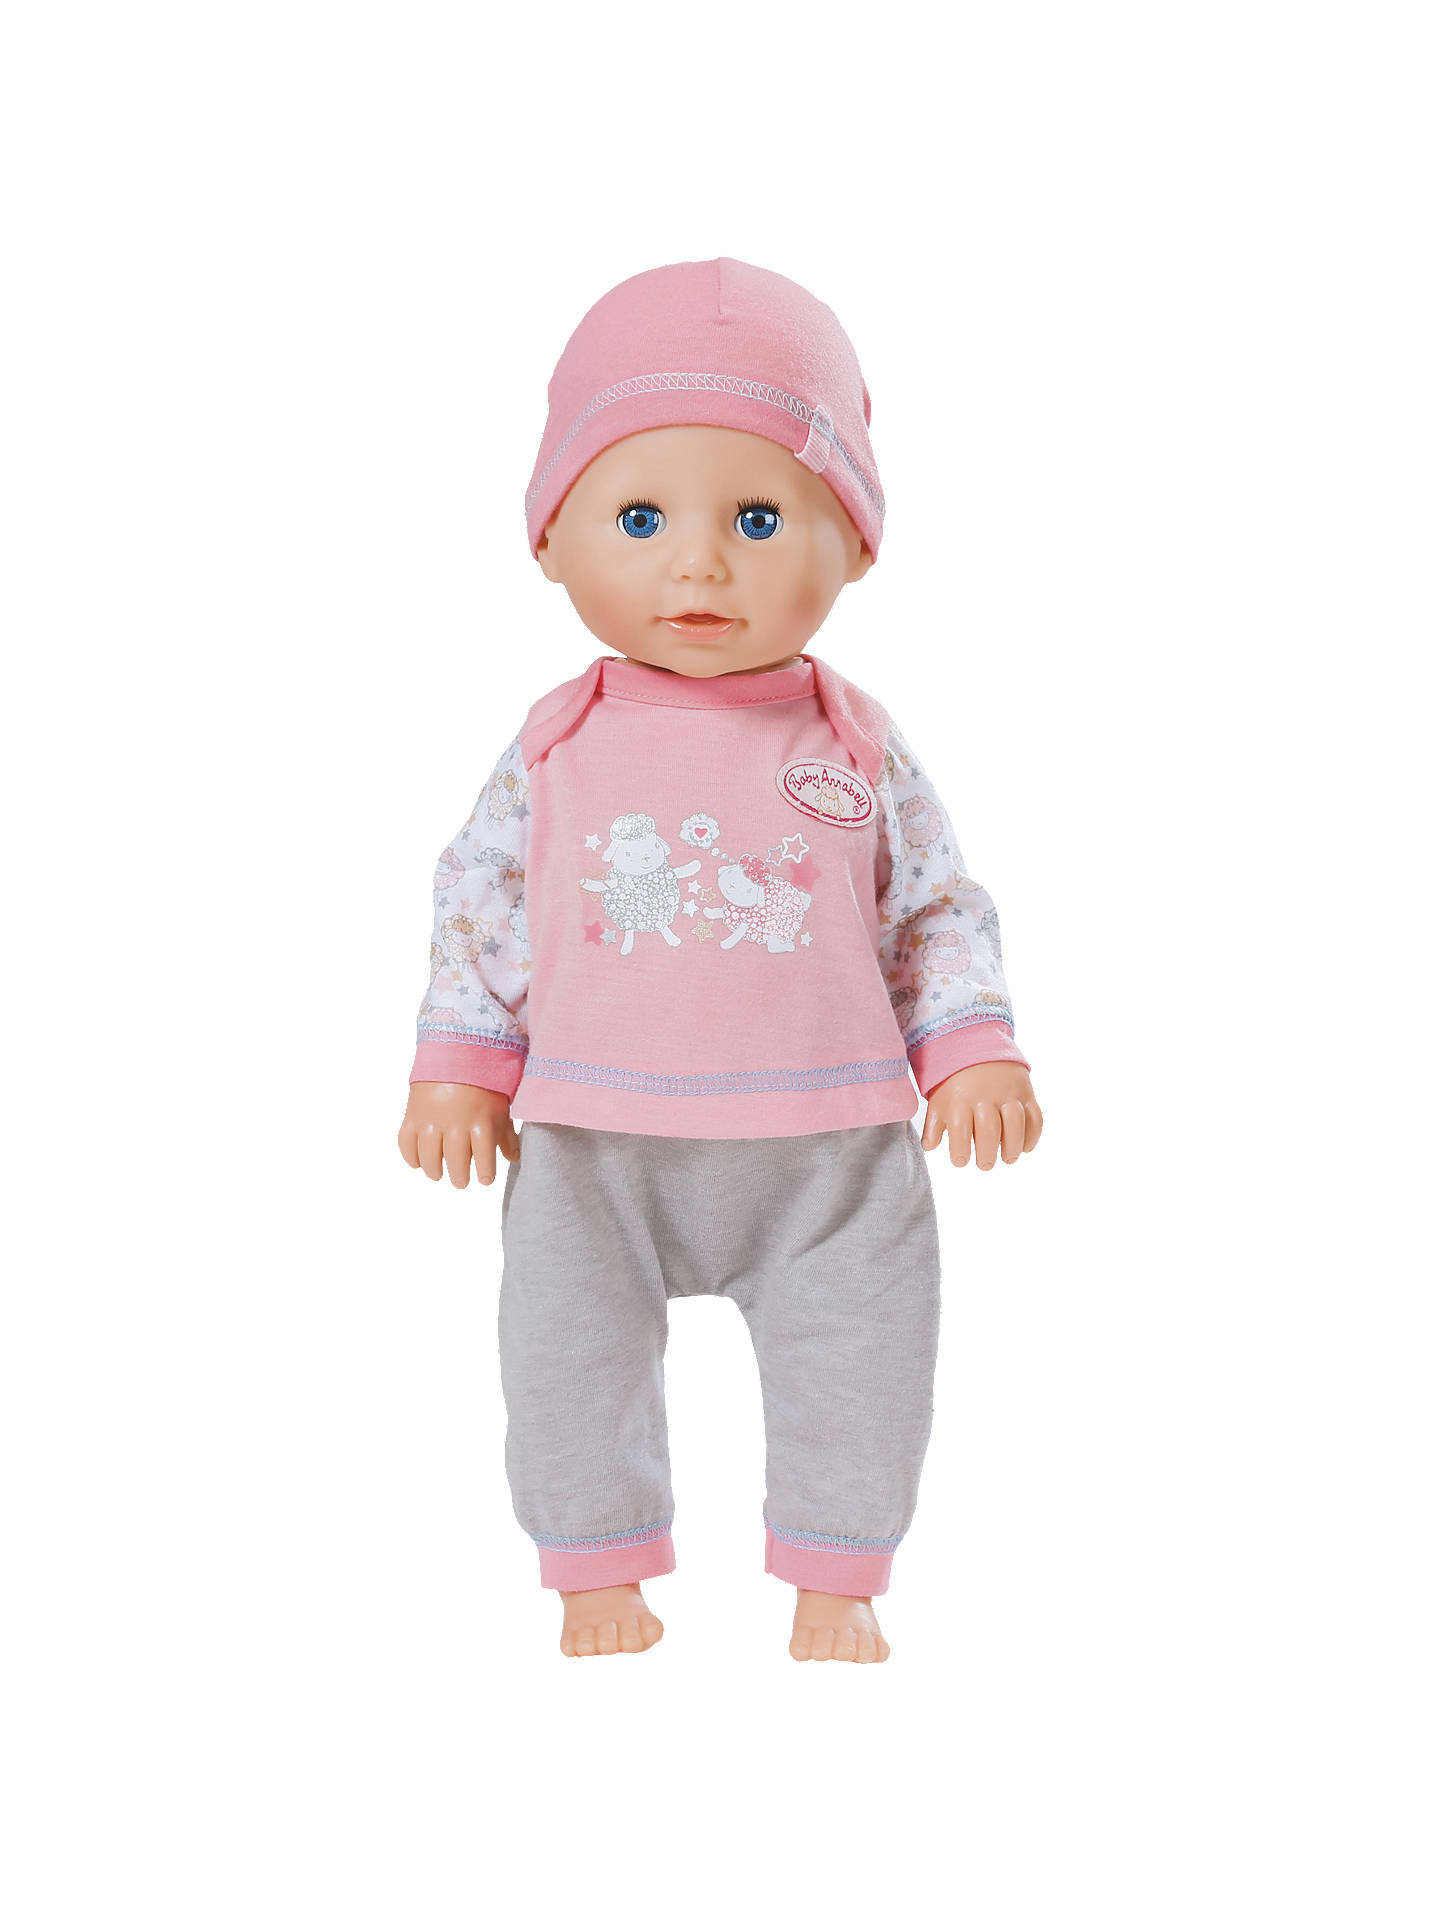 Baby Annabell Learns To Walk Doll at John Lewis & Partners